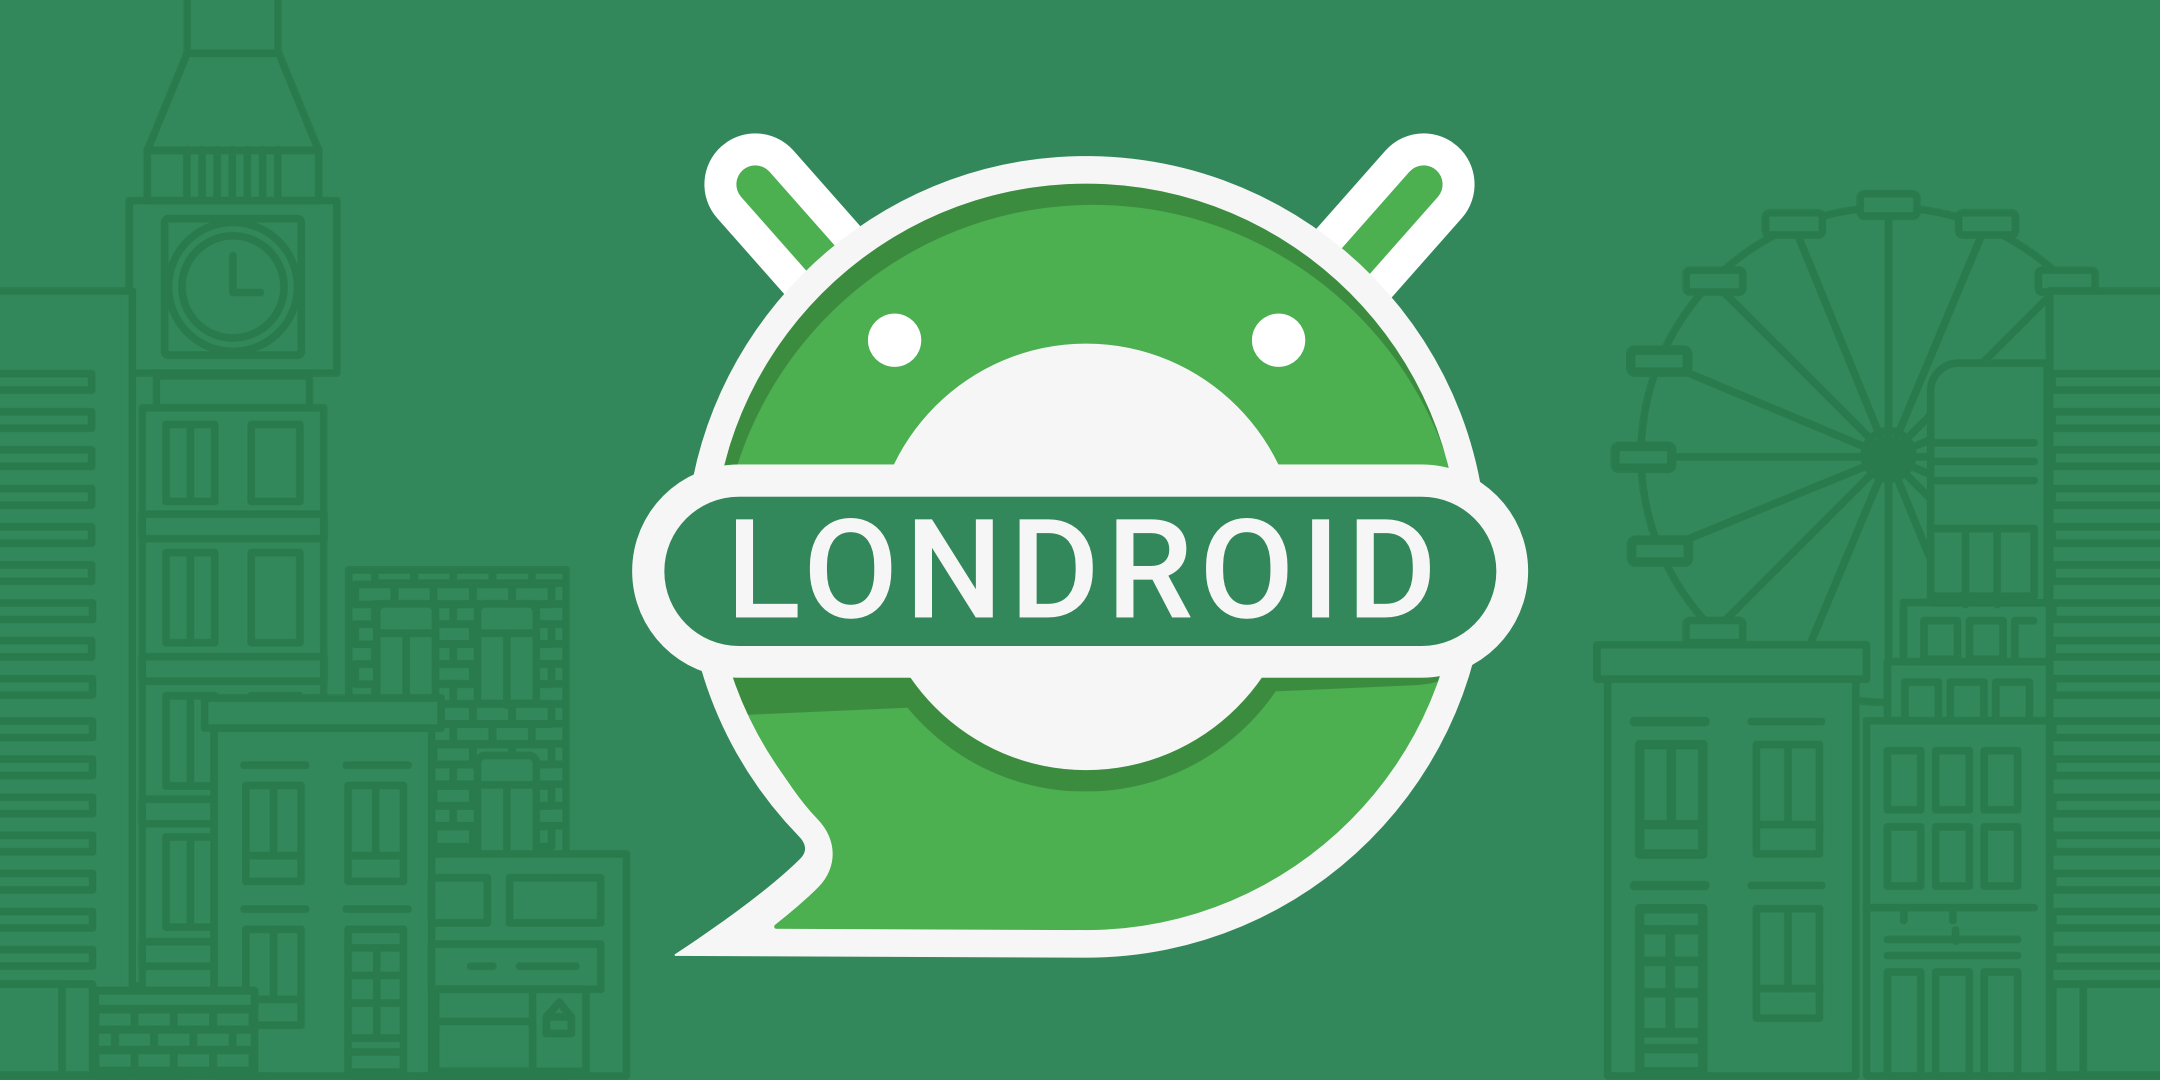 The London Android Group - Londroid